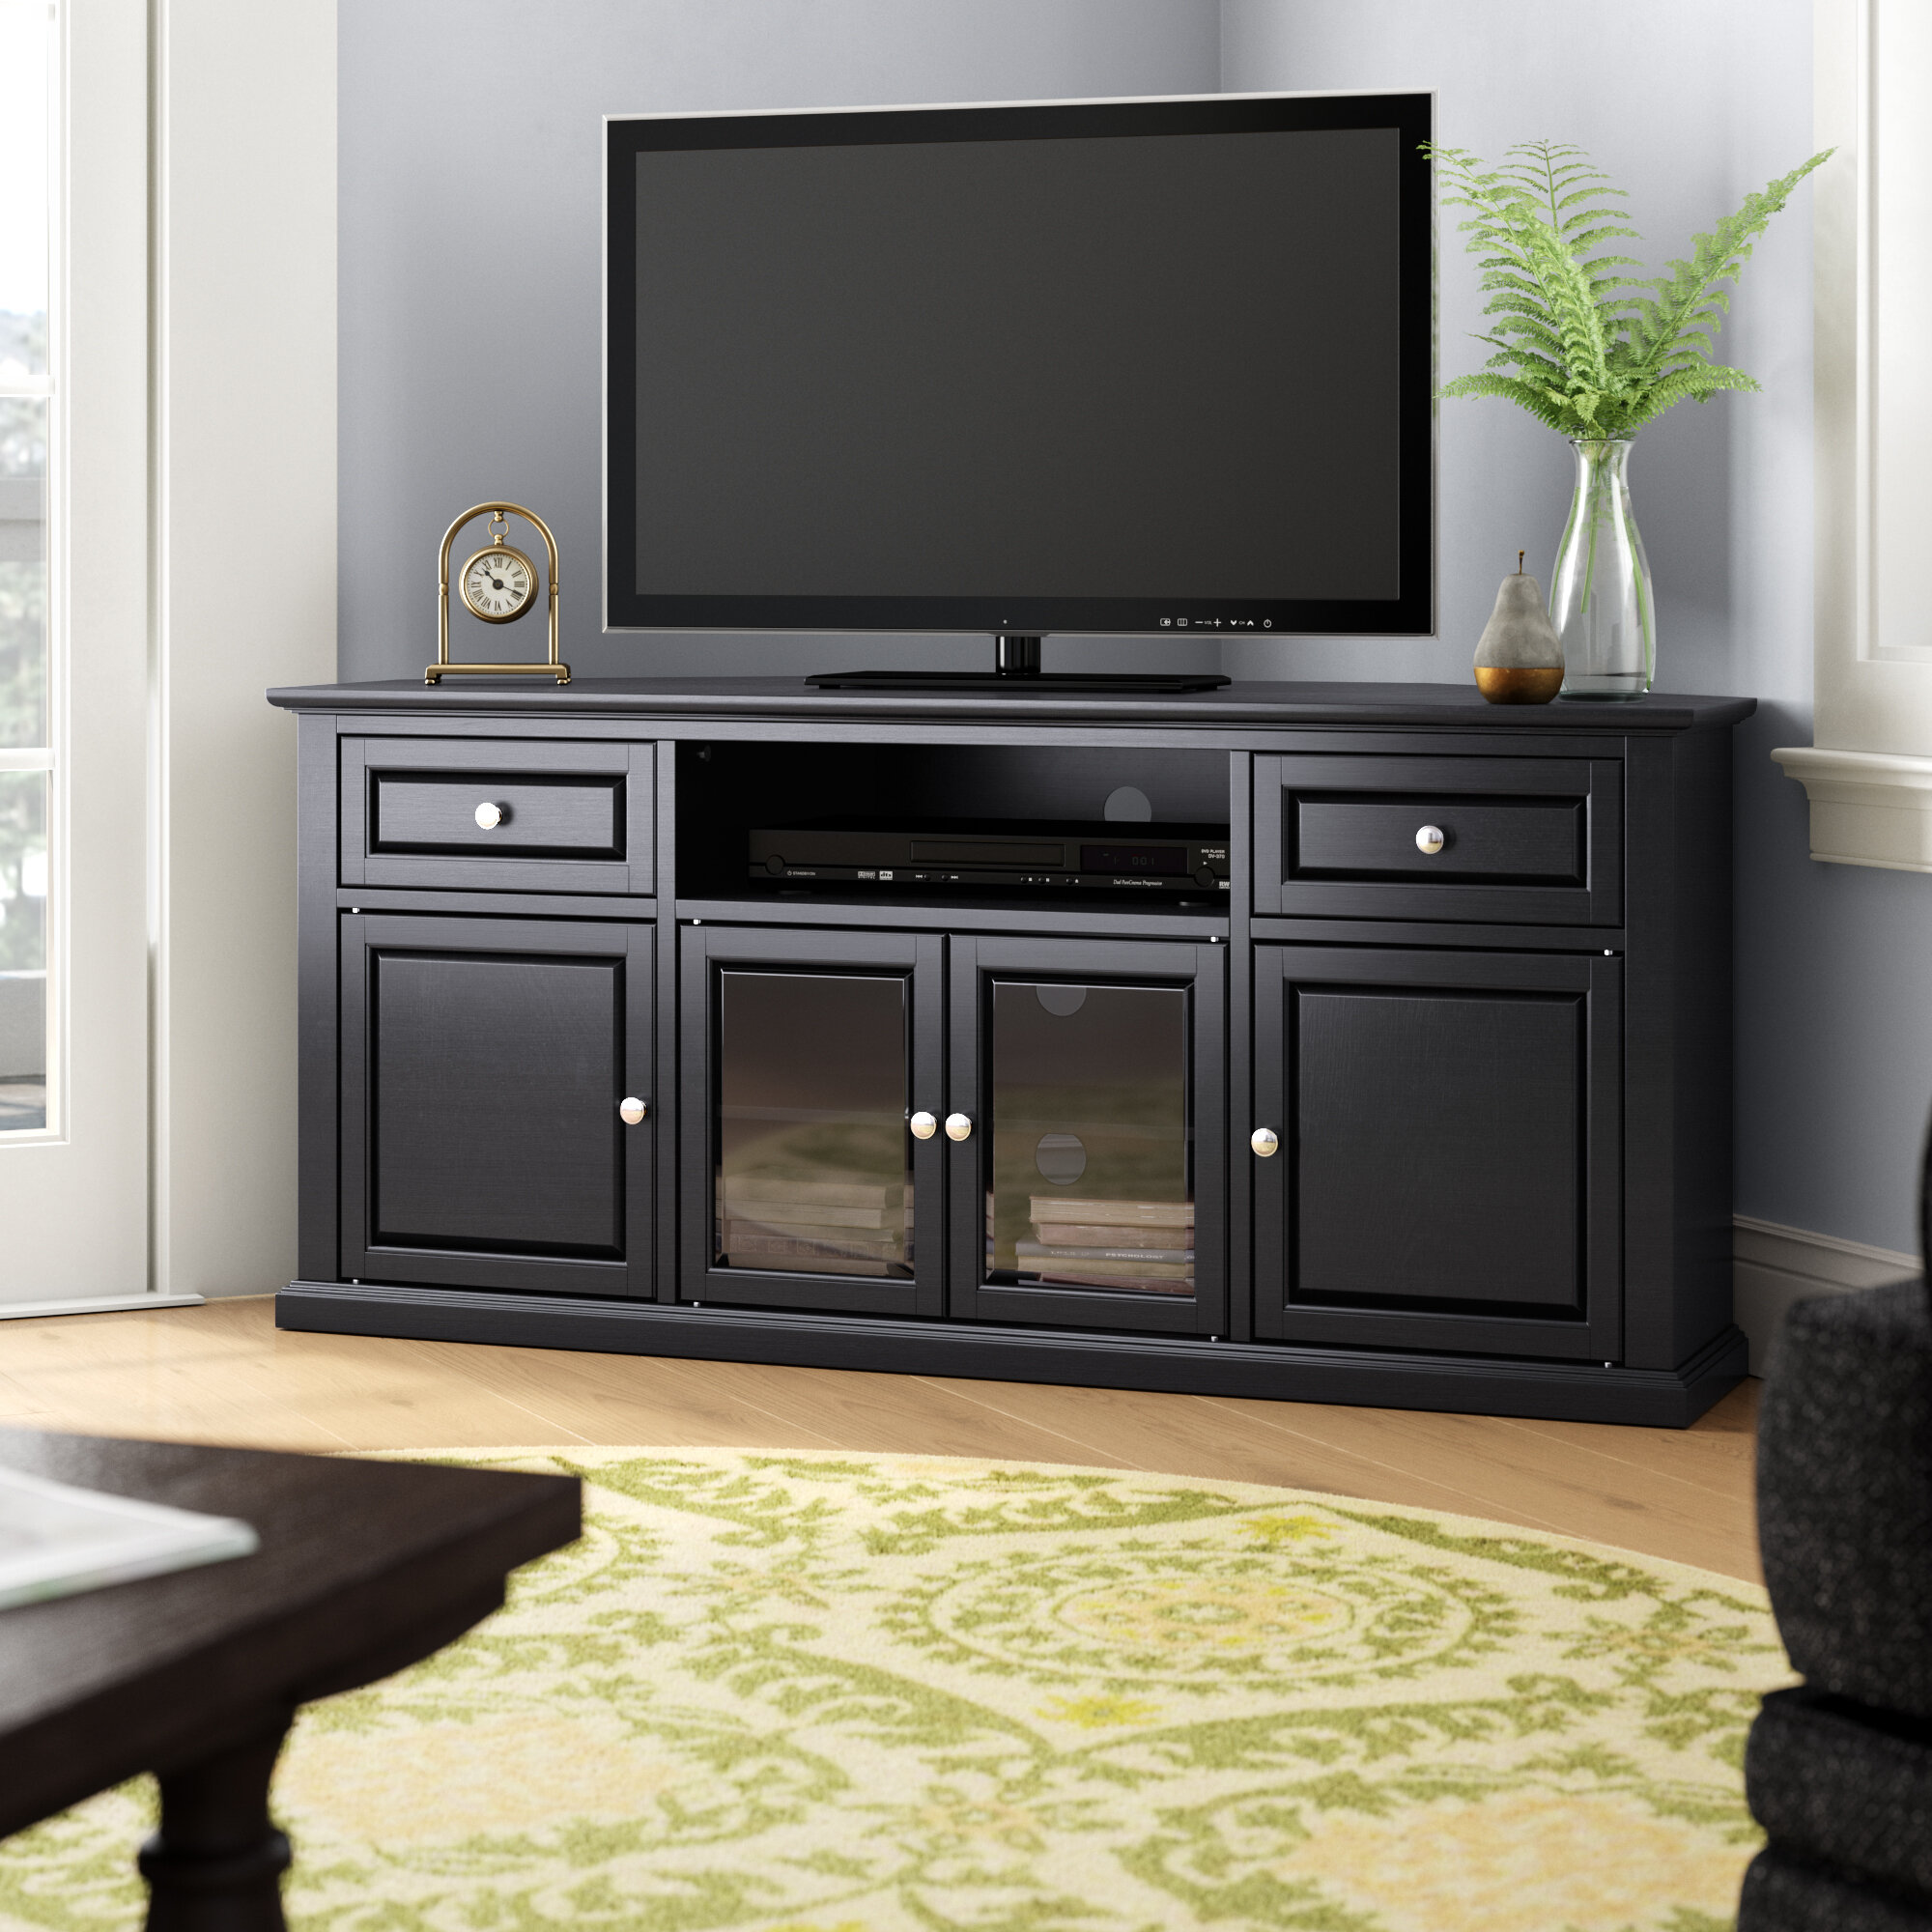 Darby Home Co Dye Tv Stand For Tvs Up To 60 Reviews Wayfair